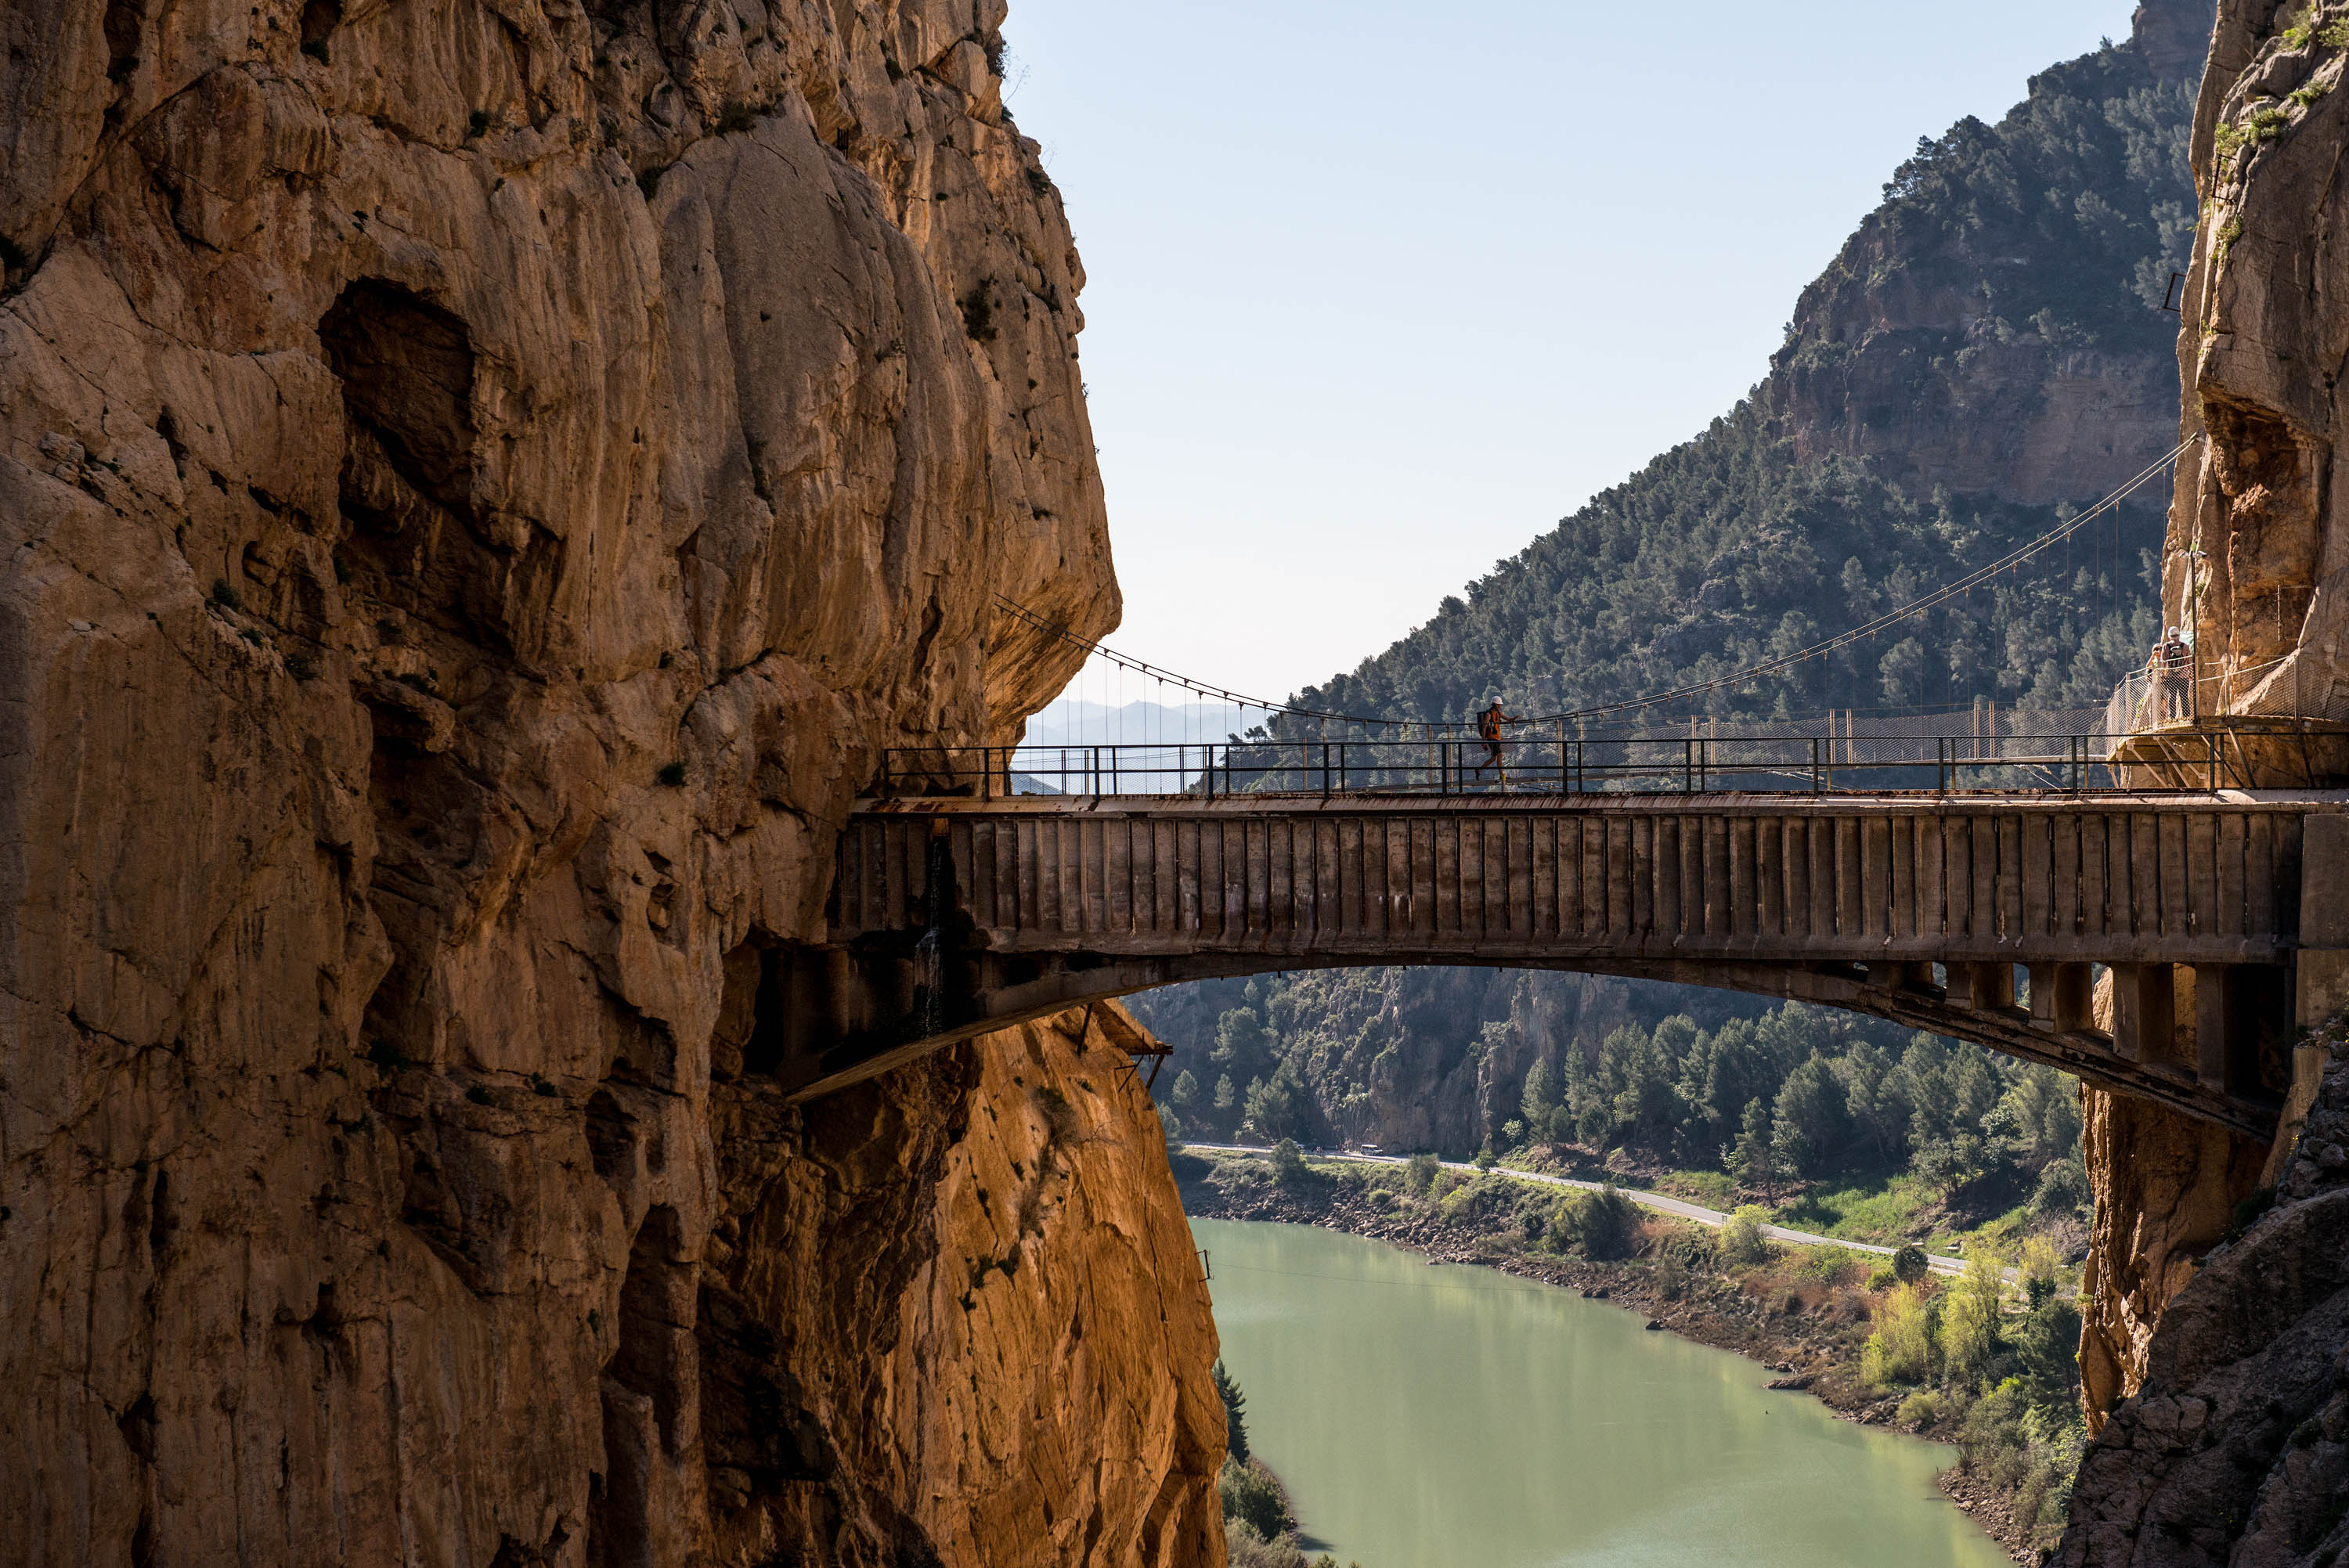 Tourists walk along the 'El Caminito del Rey' (King's Little Path) footpath on April 1, 2015 in Malaga, Spain.